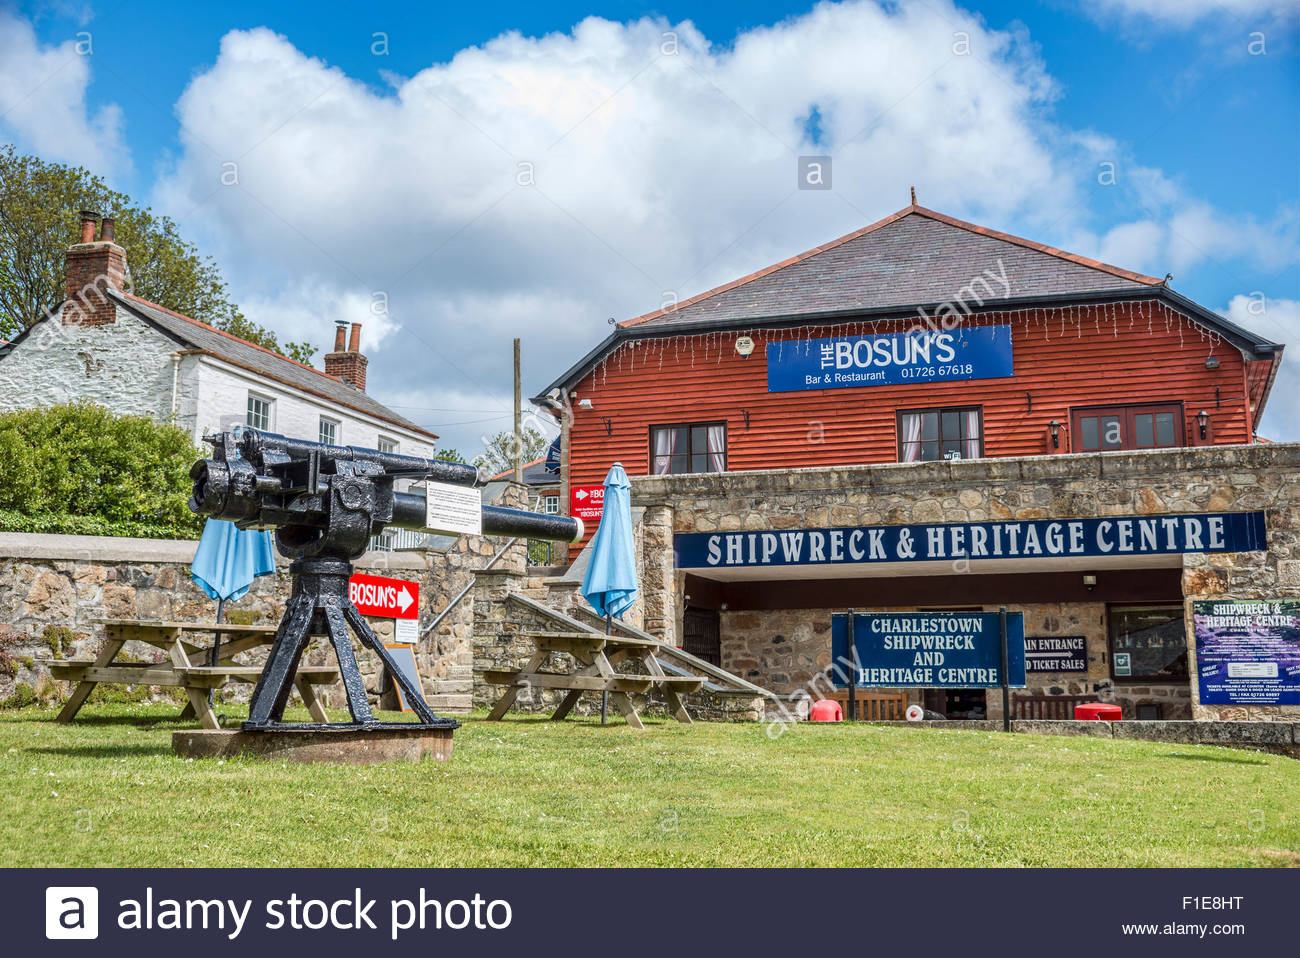 Shipwreck & Heritage Center, Charlestown, Cornwall, England - Stock Image